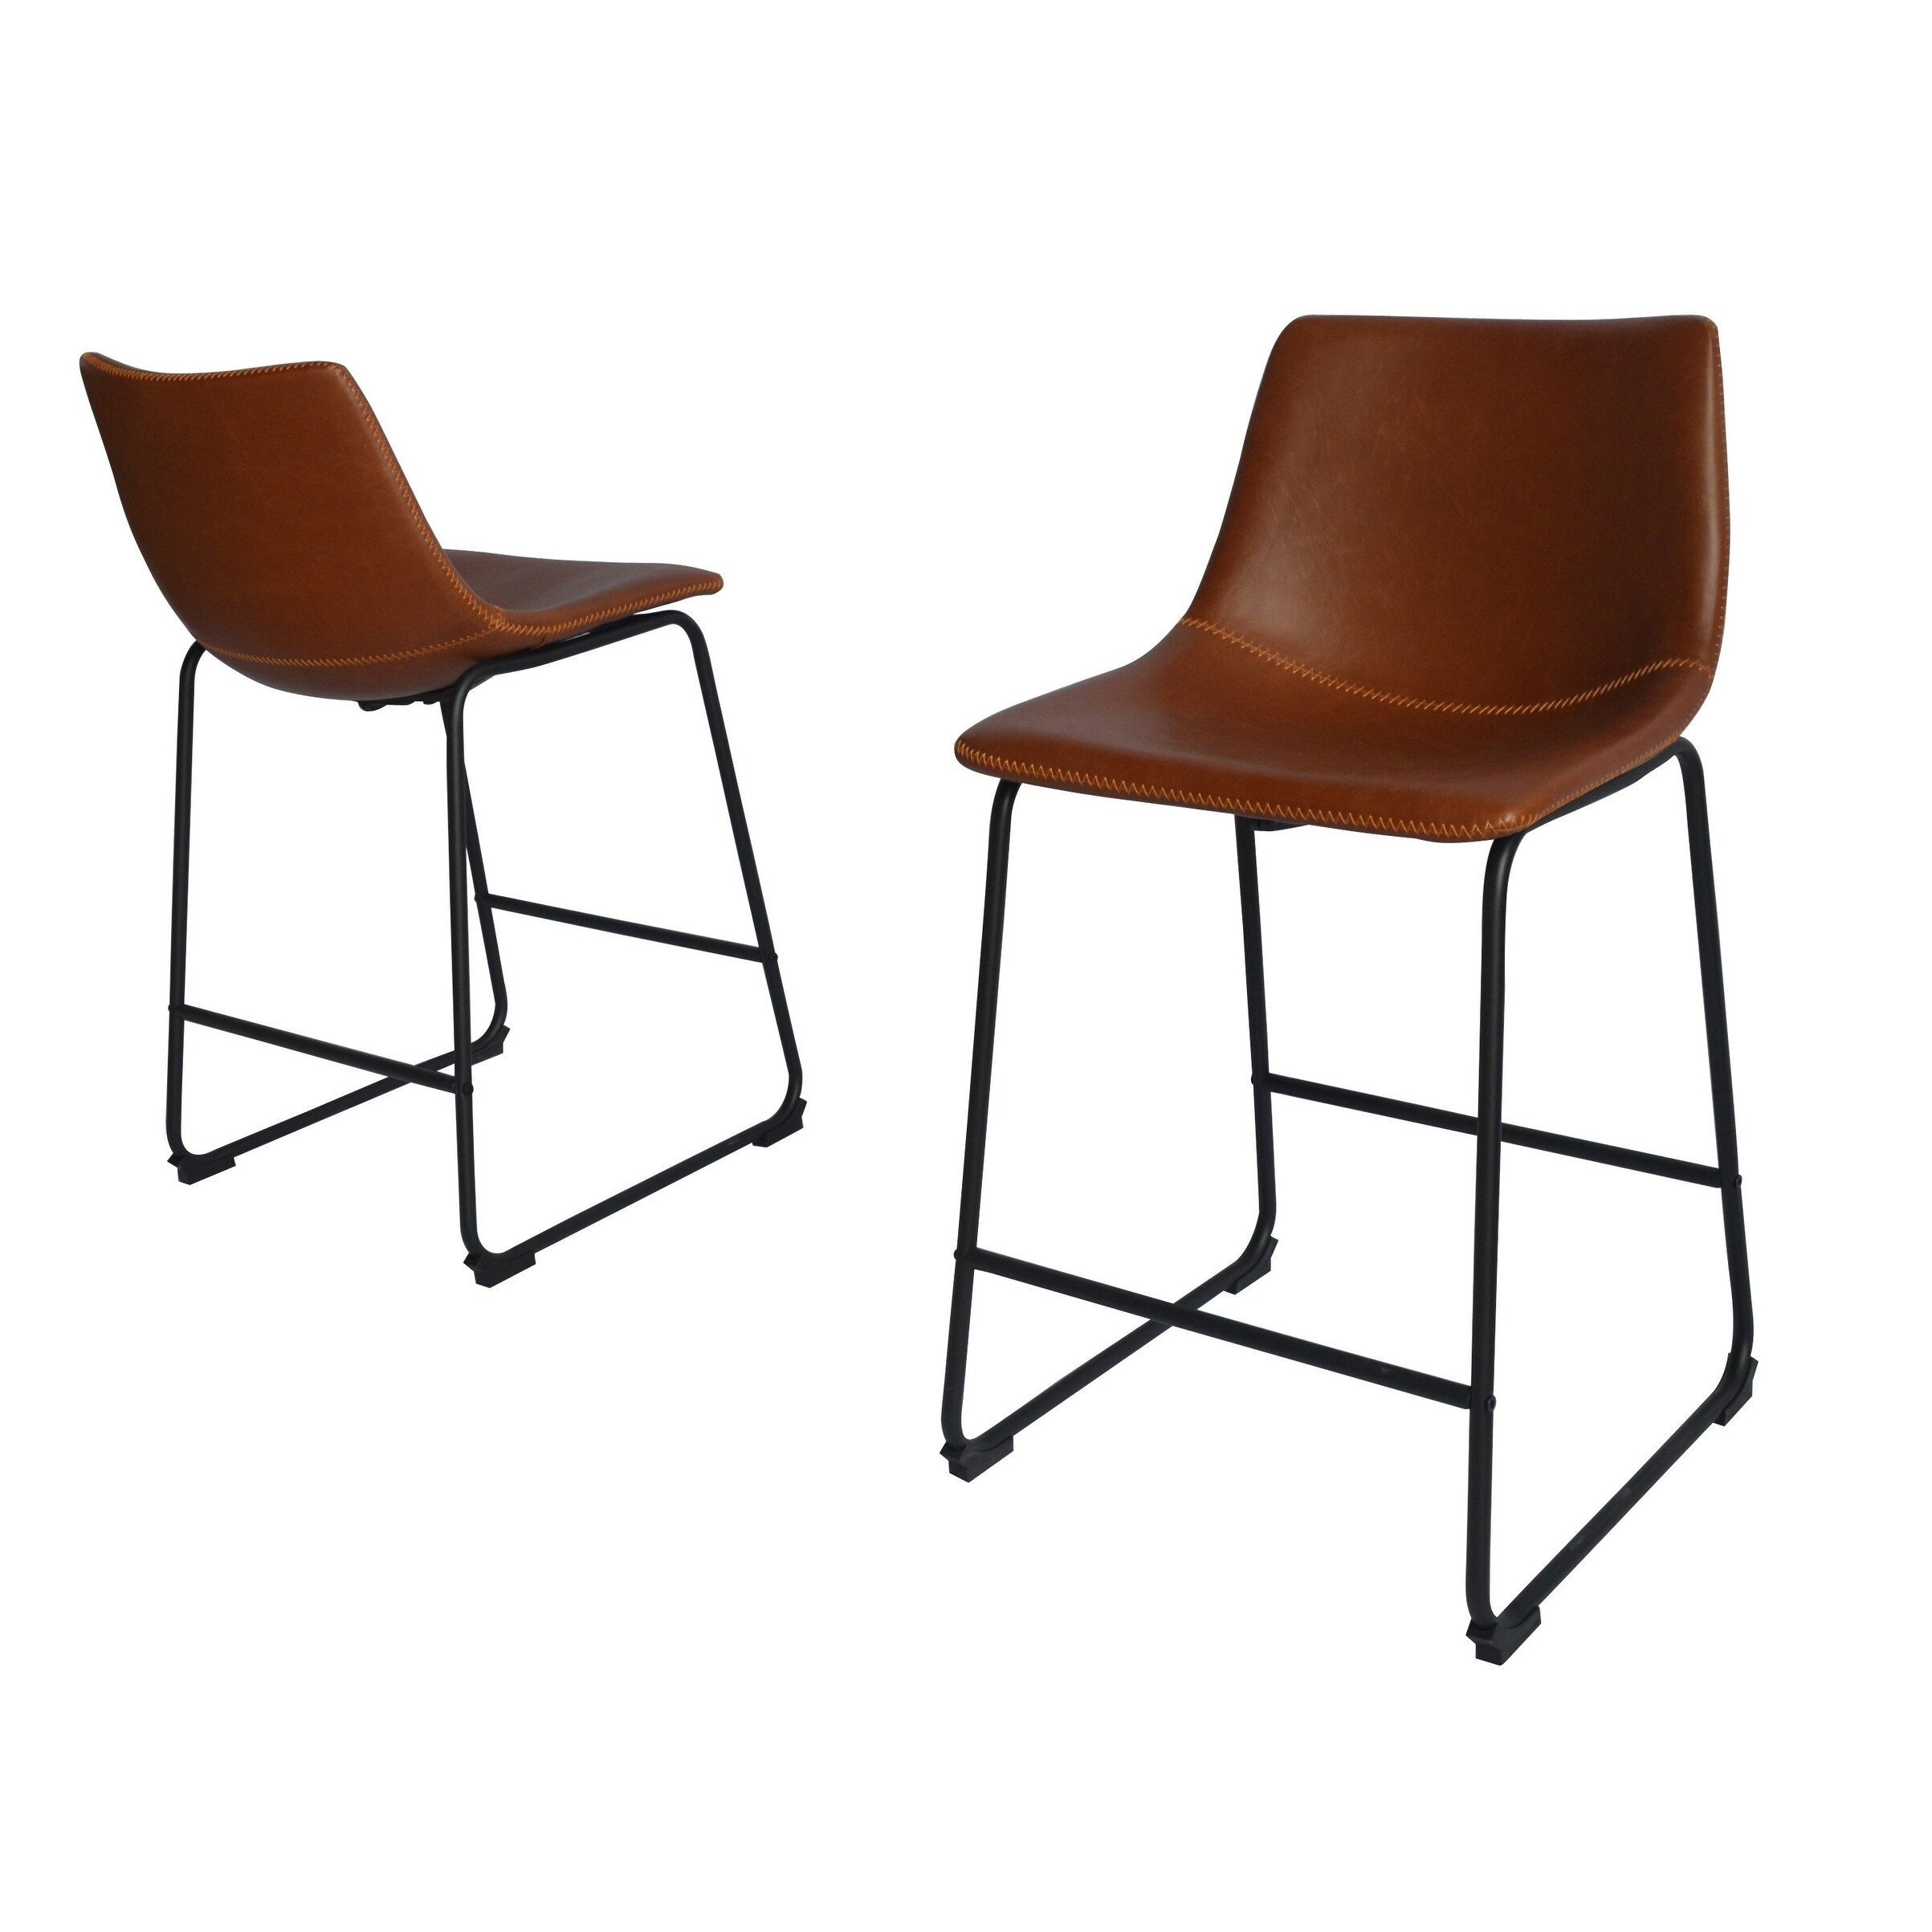 counter height chair lowes patio chairs clearance shop best quality furniture 24 inch set of 2